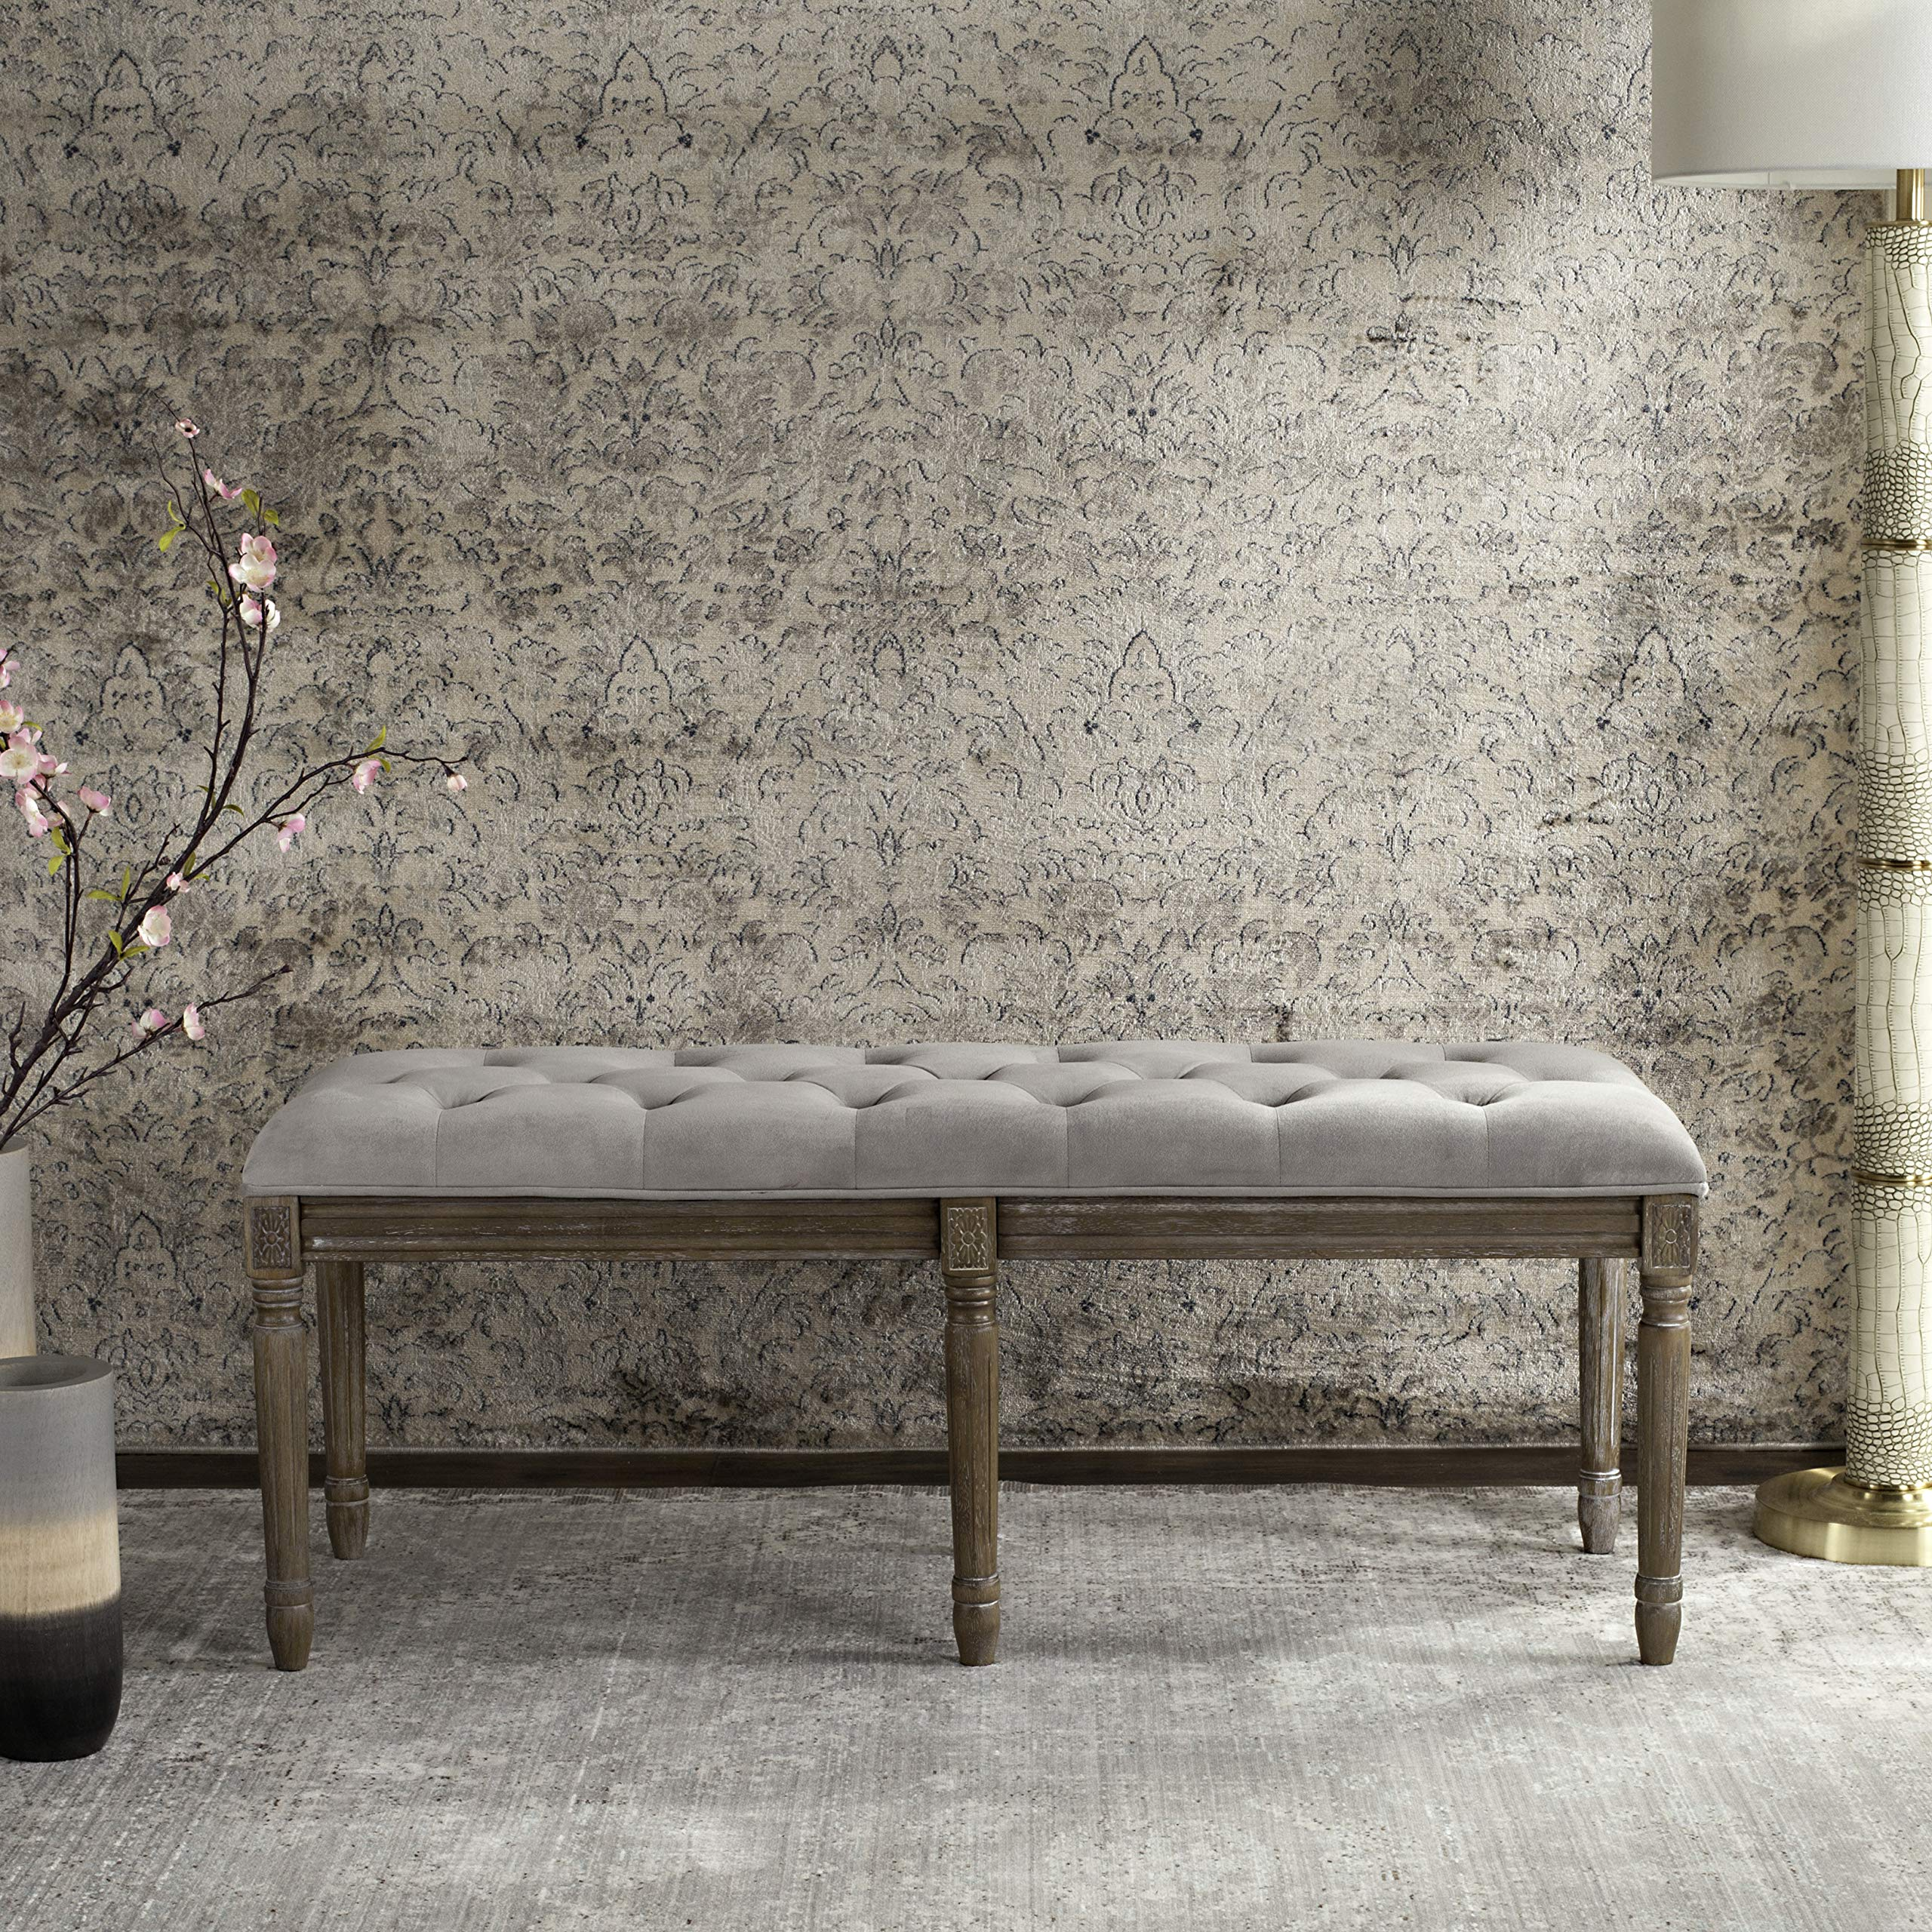 Safavieh Home Collection Rocha French Brasserie Tufted Grey and Rustic Oak 19-inch Wood Bench by Safavieh (Image #3)